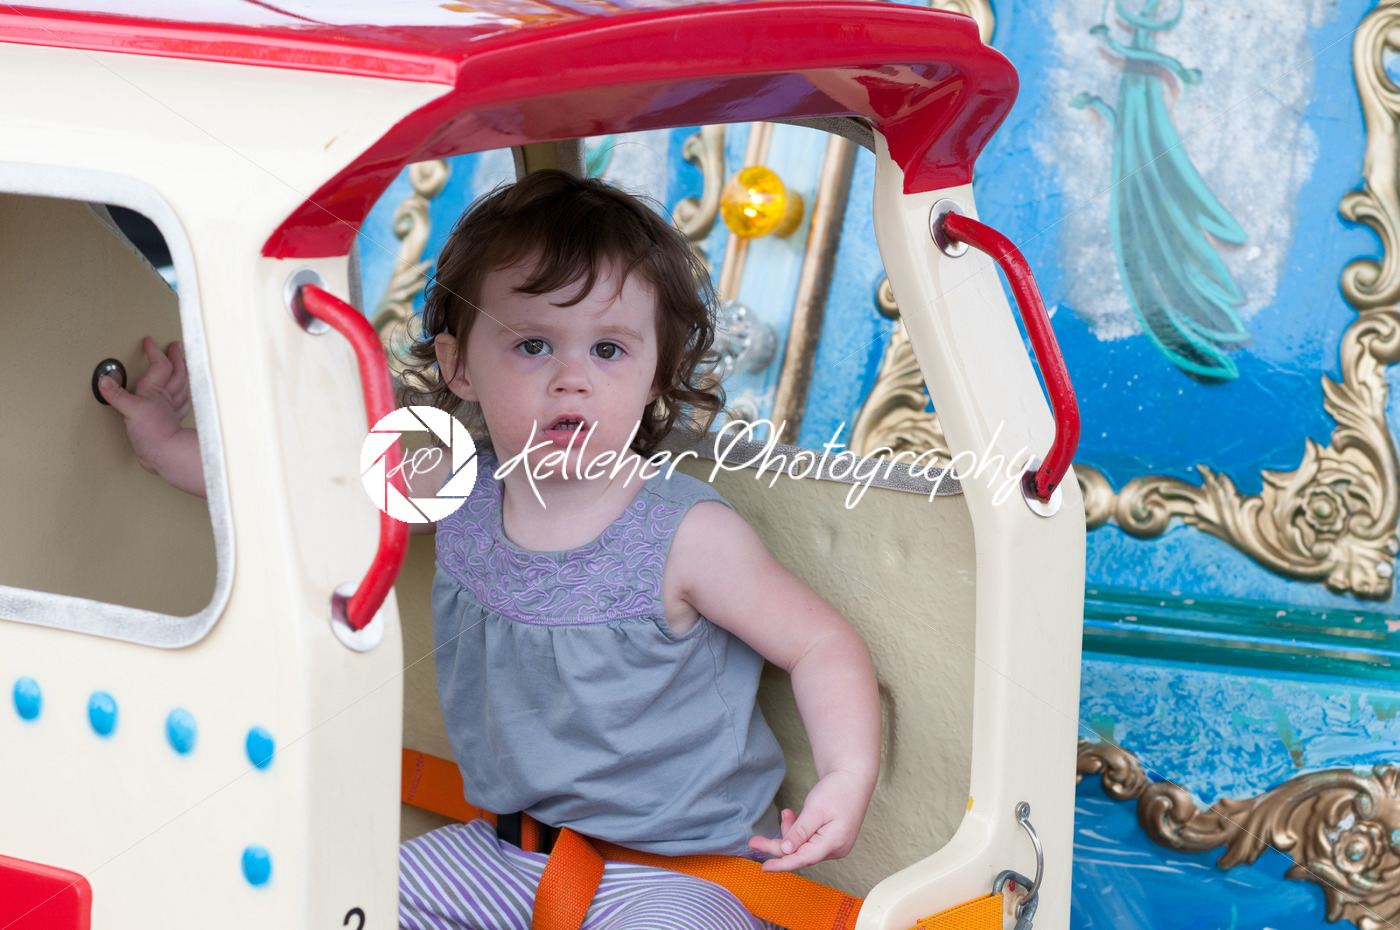 Young toddler girl having fun on boardwalk amusement ride - Kelleher Photography Store